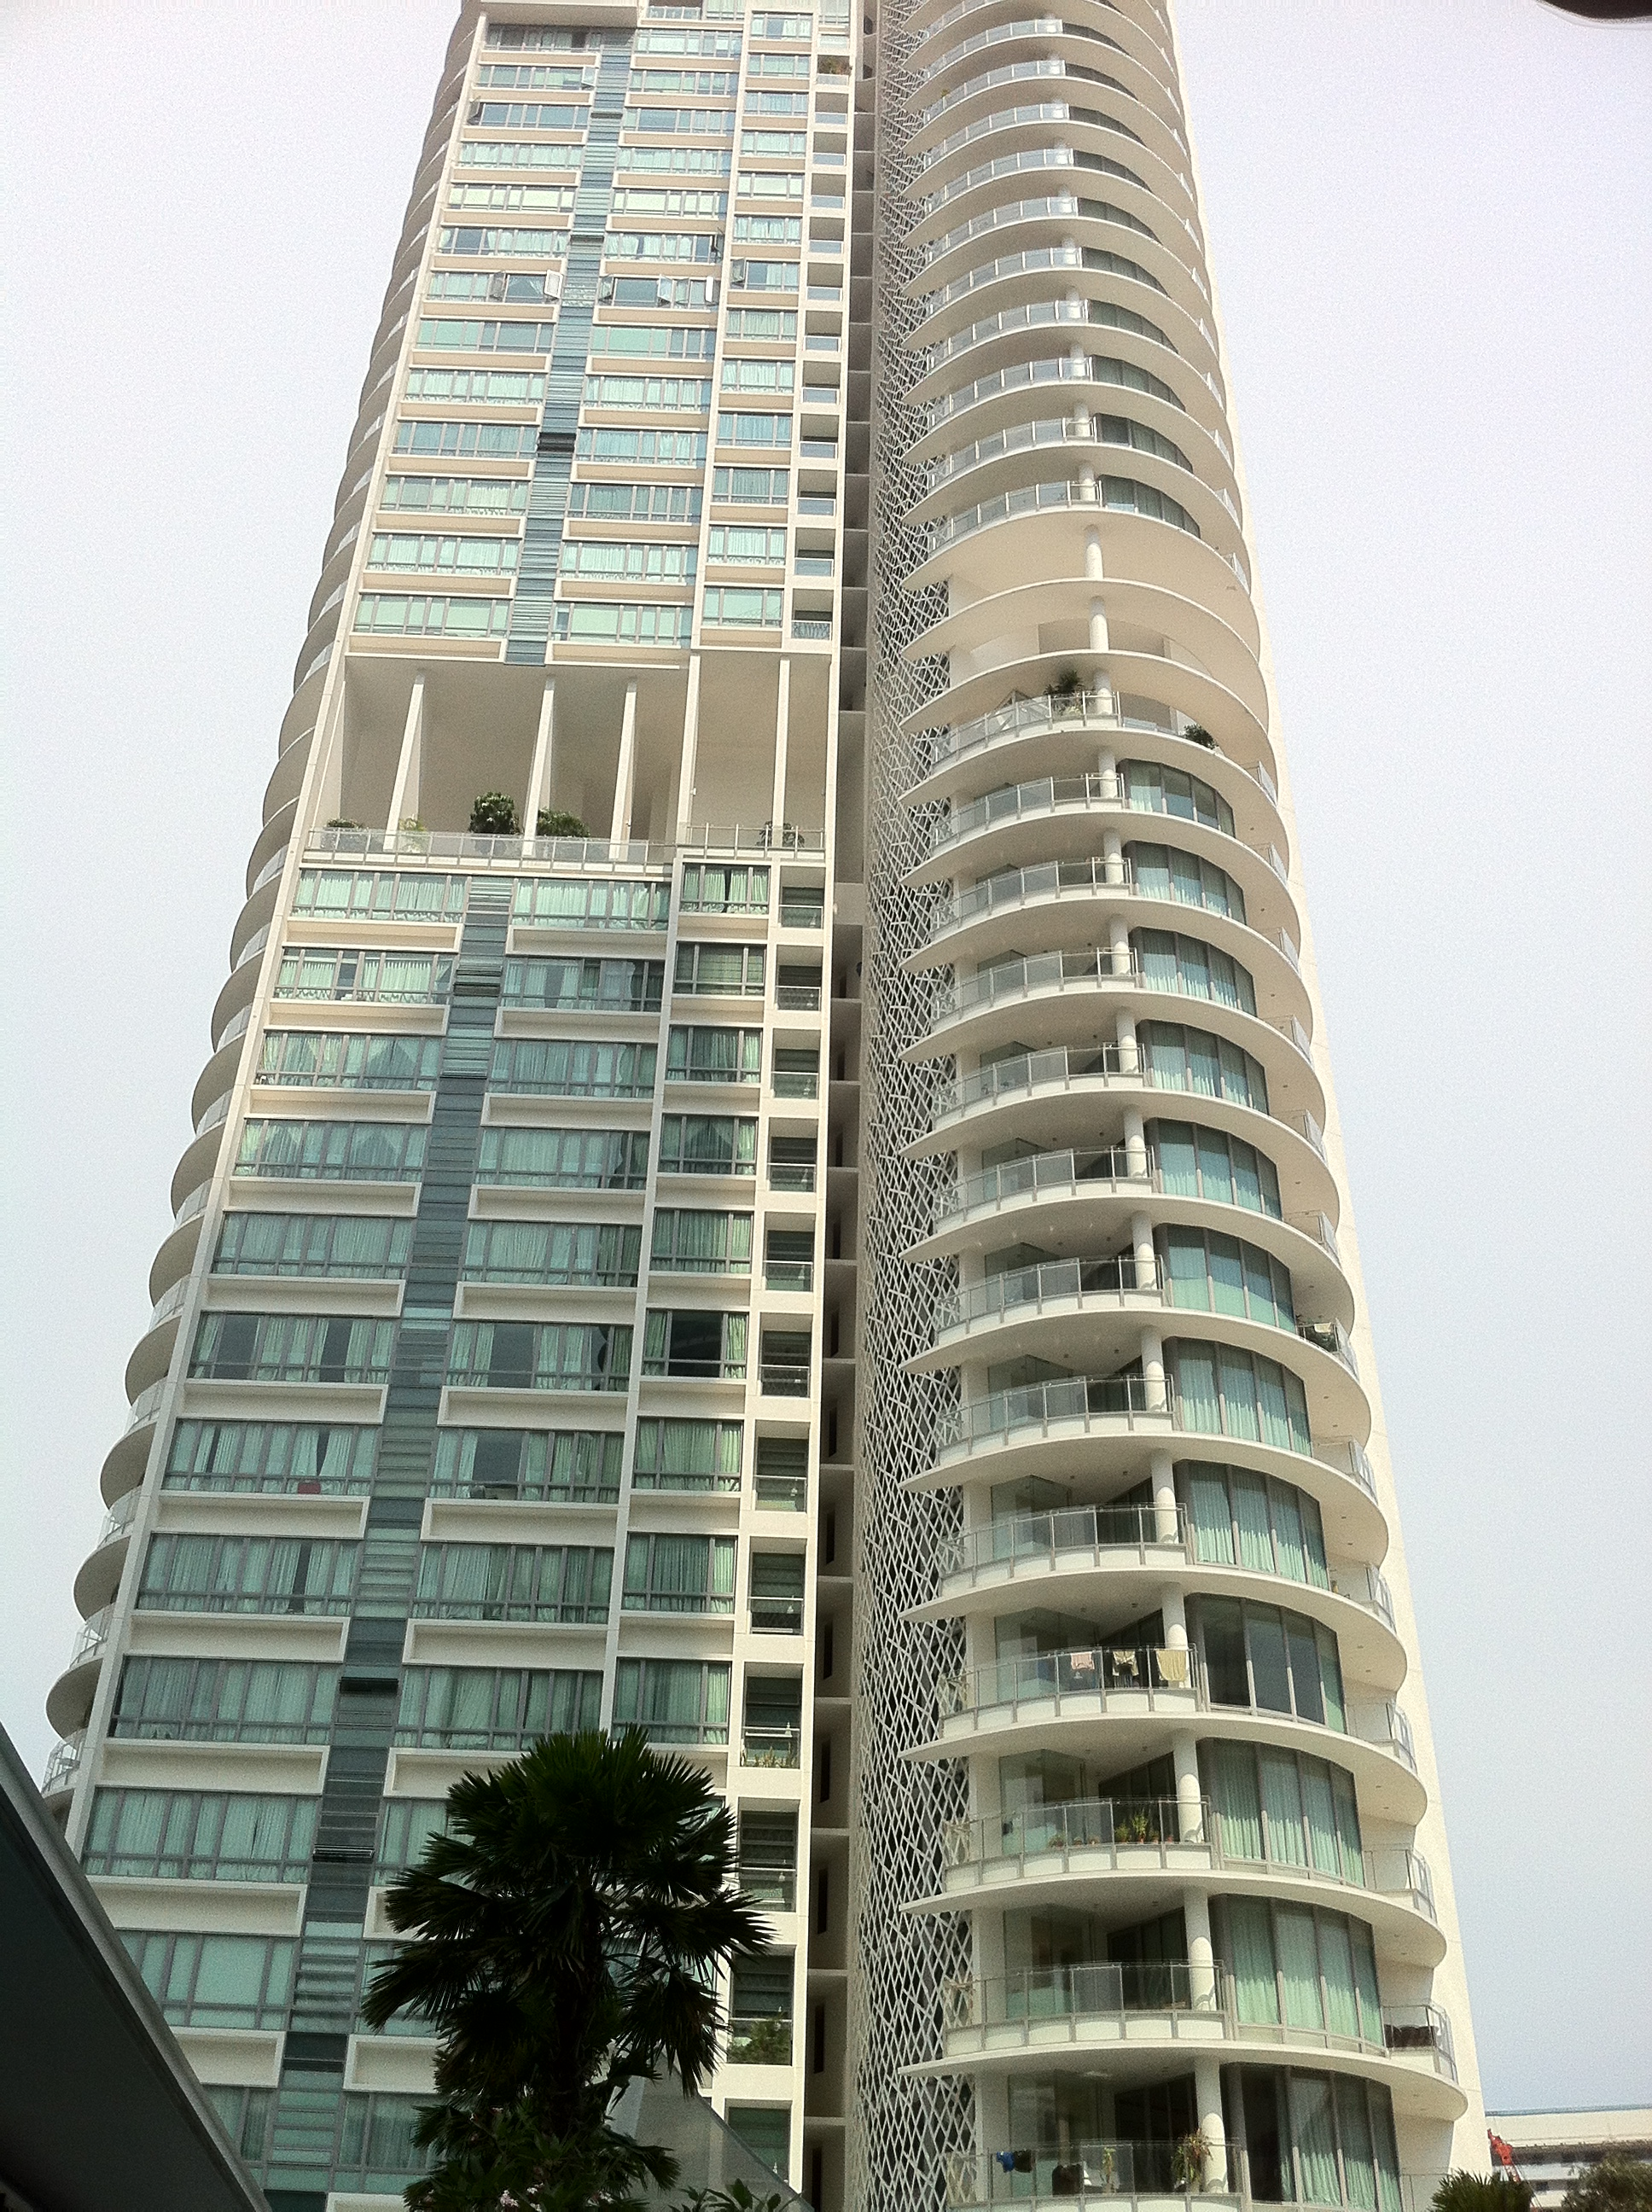 Gallery The Trillium Singapore Condo Condominium